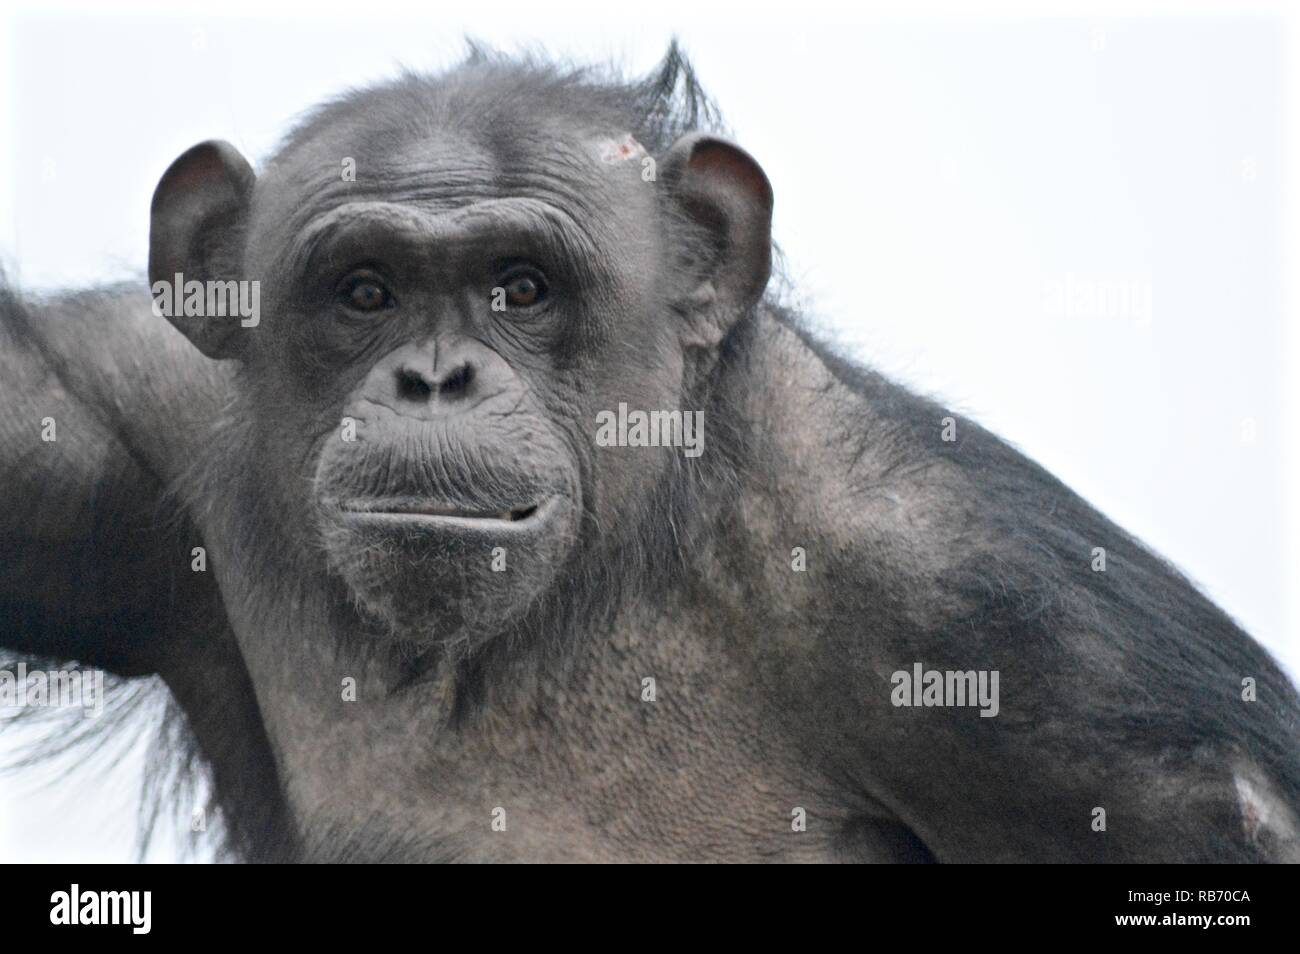 Vicky a Twycross chimp - Stock Image